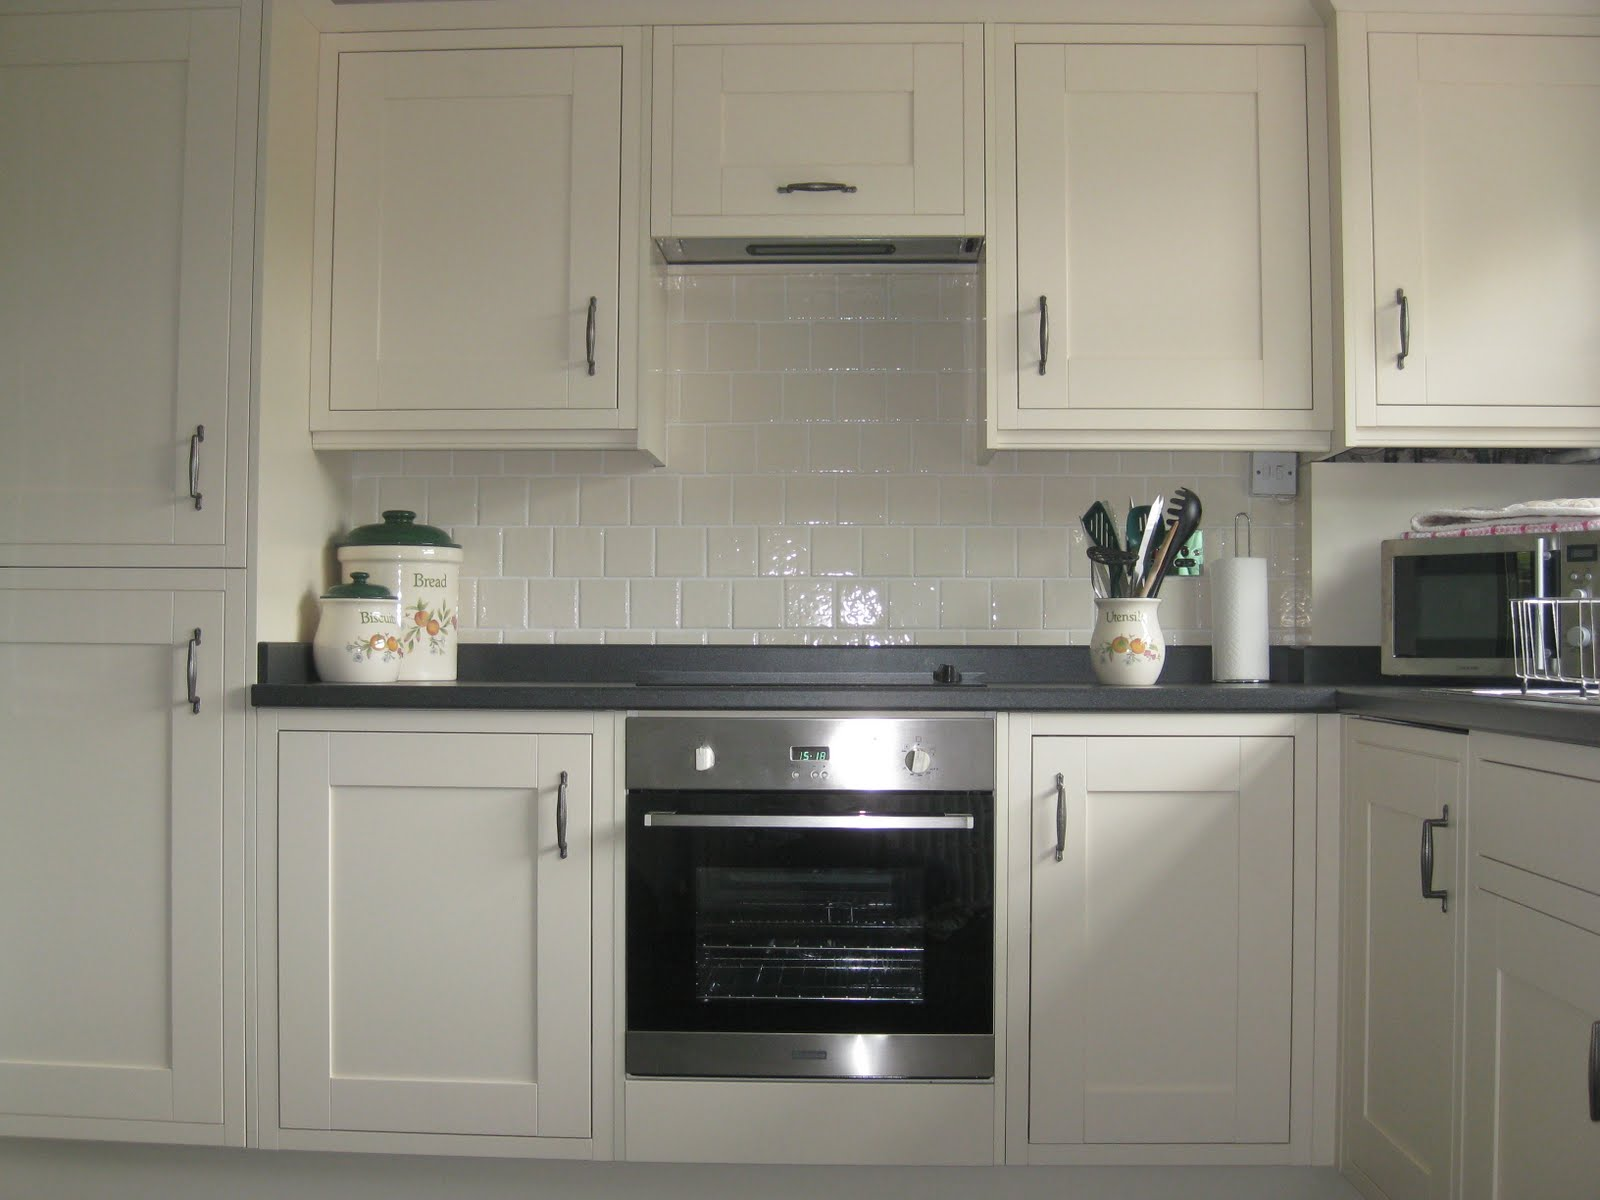 Fitted kitchen ian robert clark joinery services for Pictures of fitted kitchens